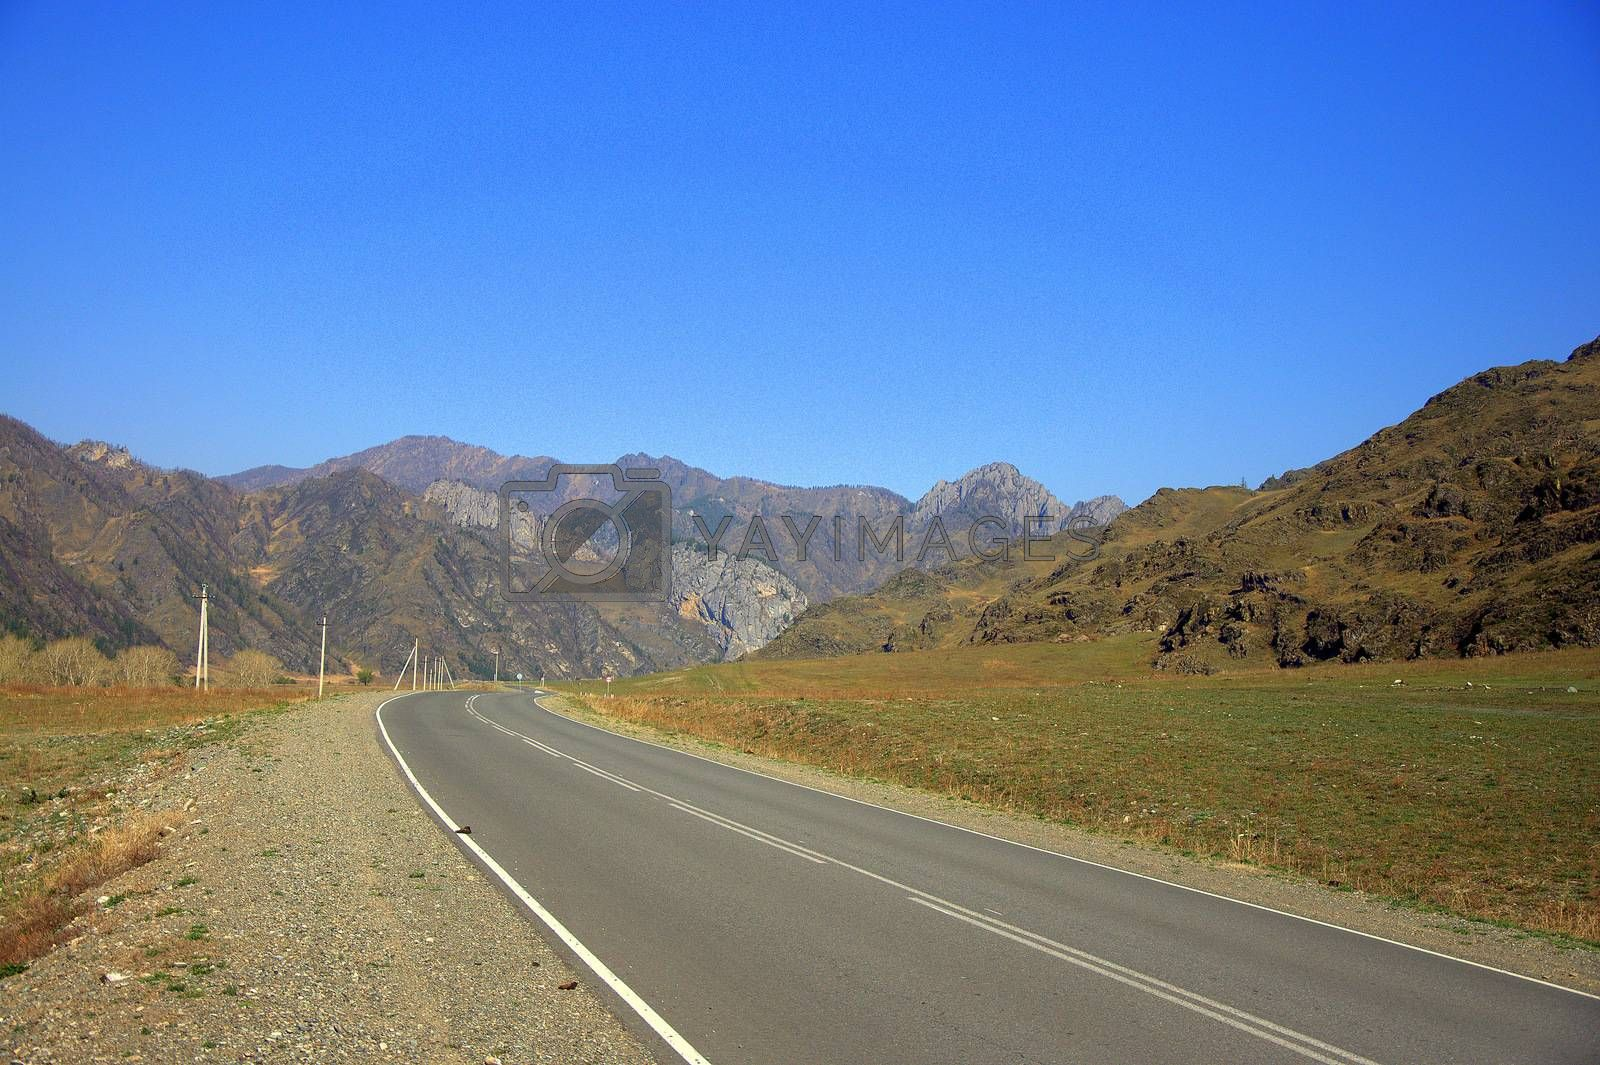 A good asphalt road winding at the foot of high mountain ranges. by Alex Yellow